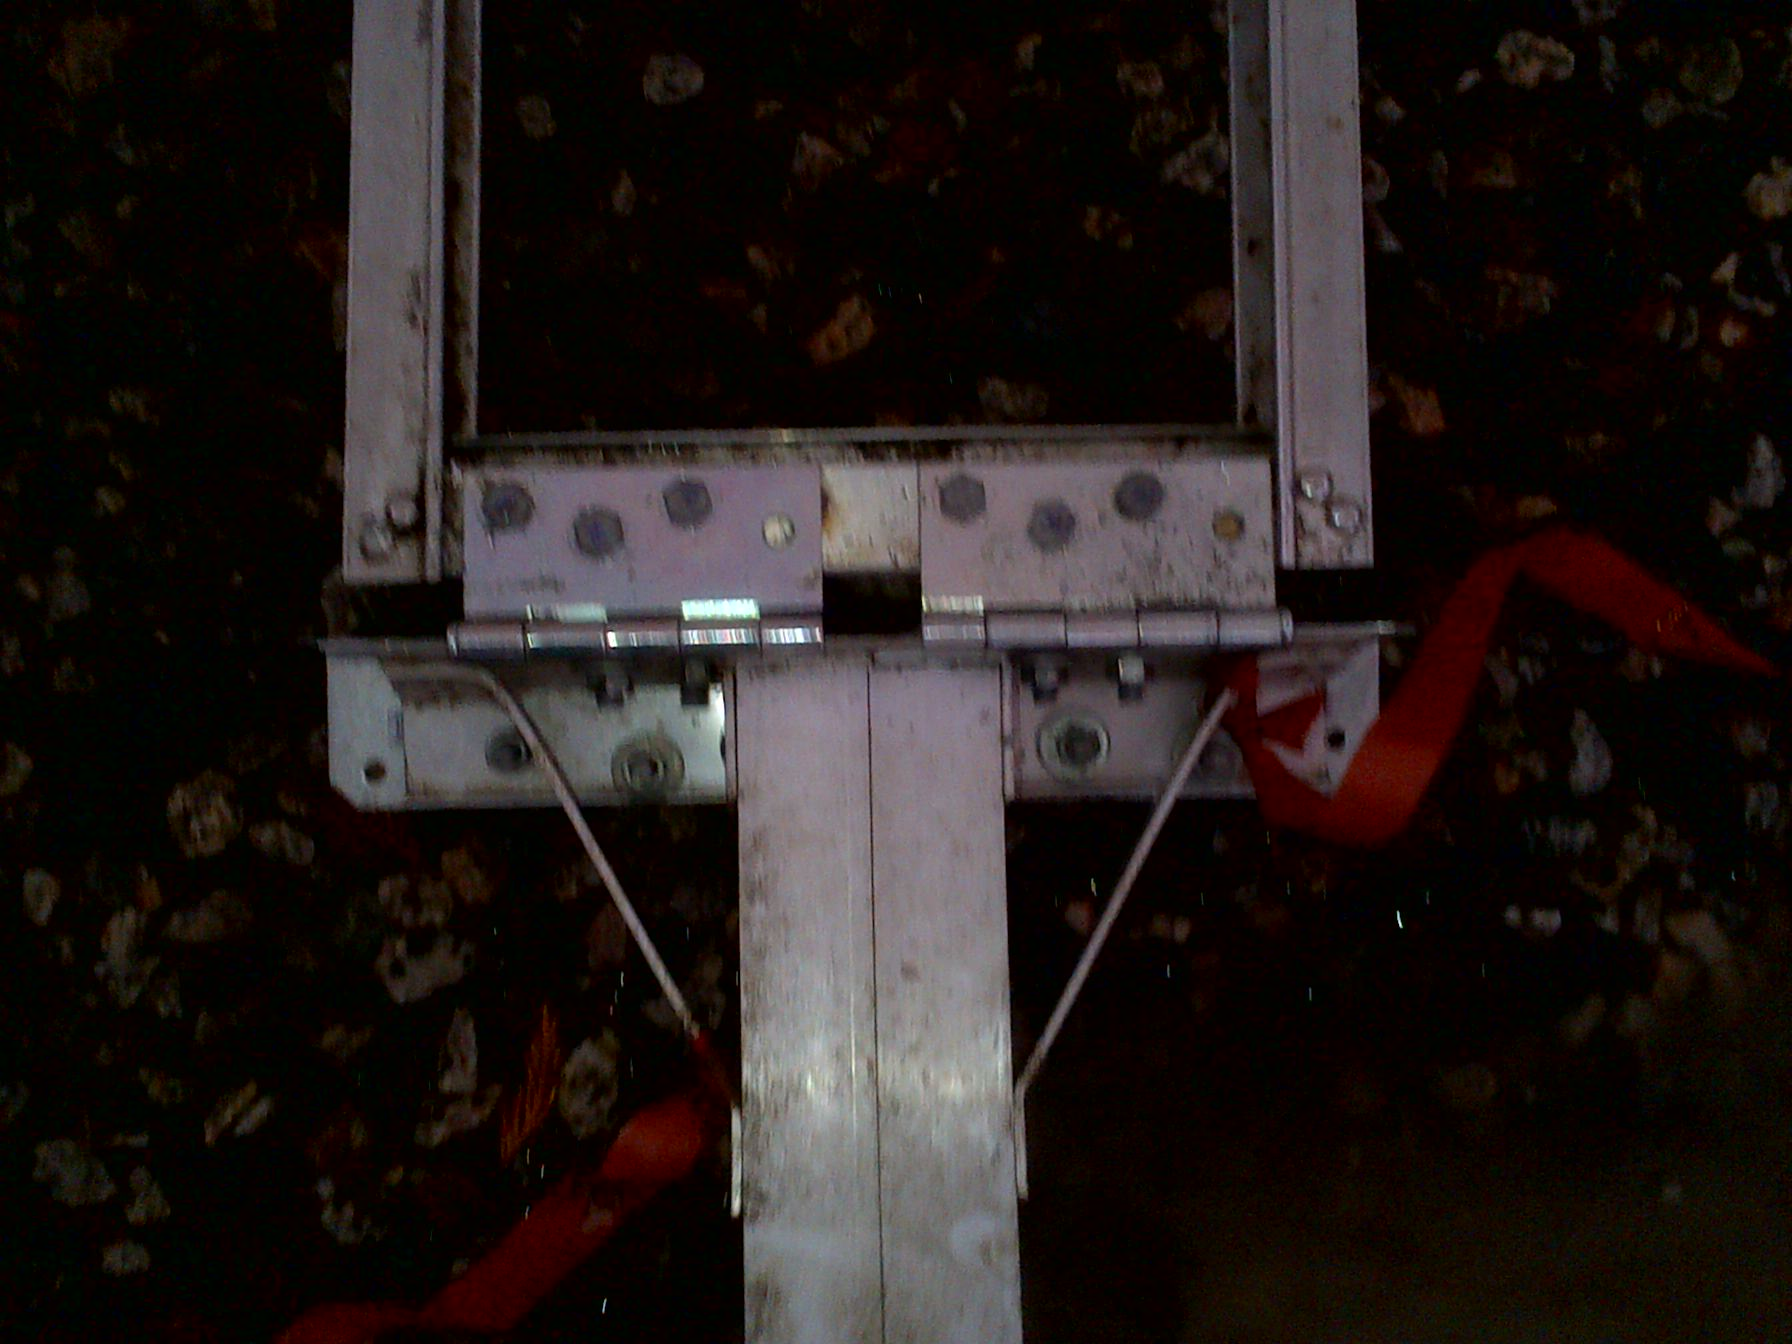 Strong hinges were bolted to both the angle iron and original frame.